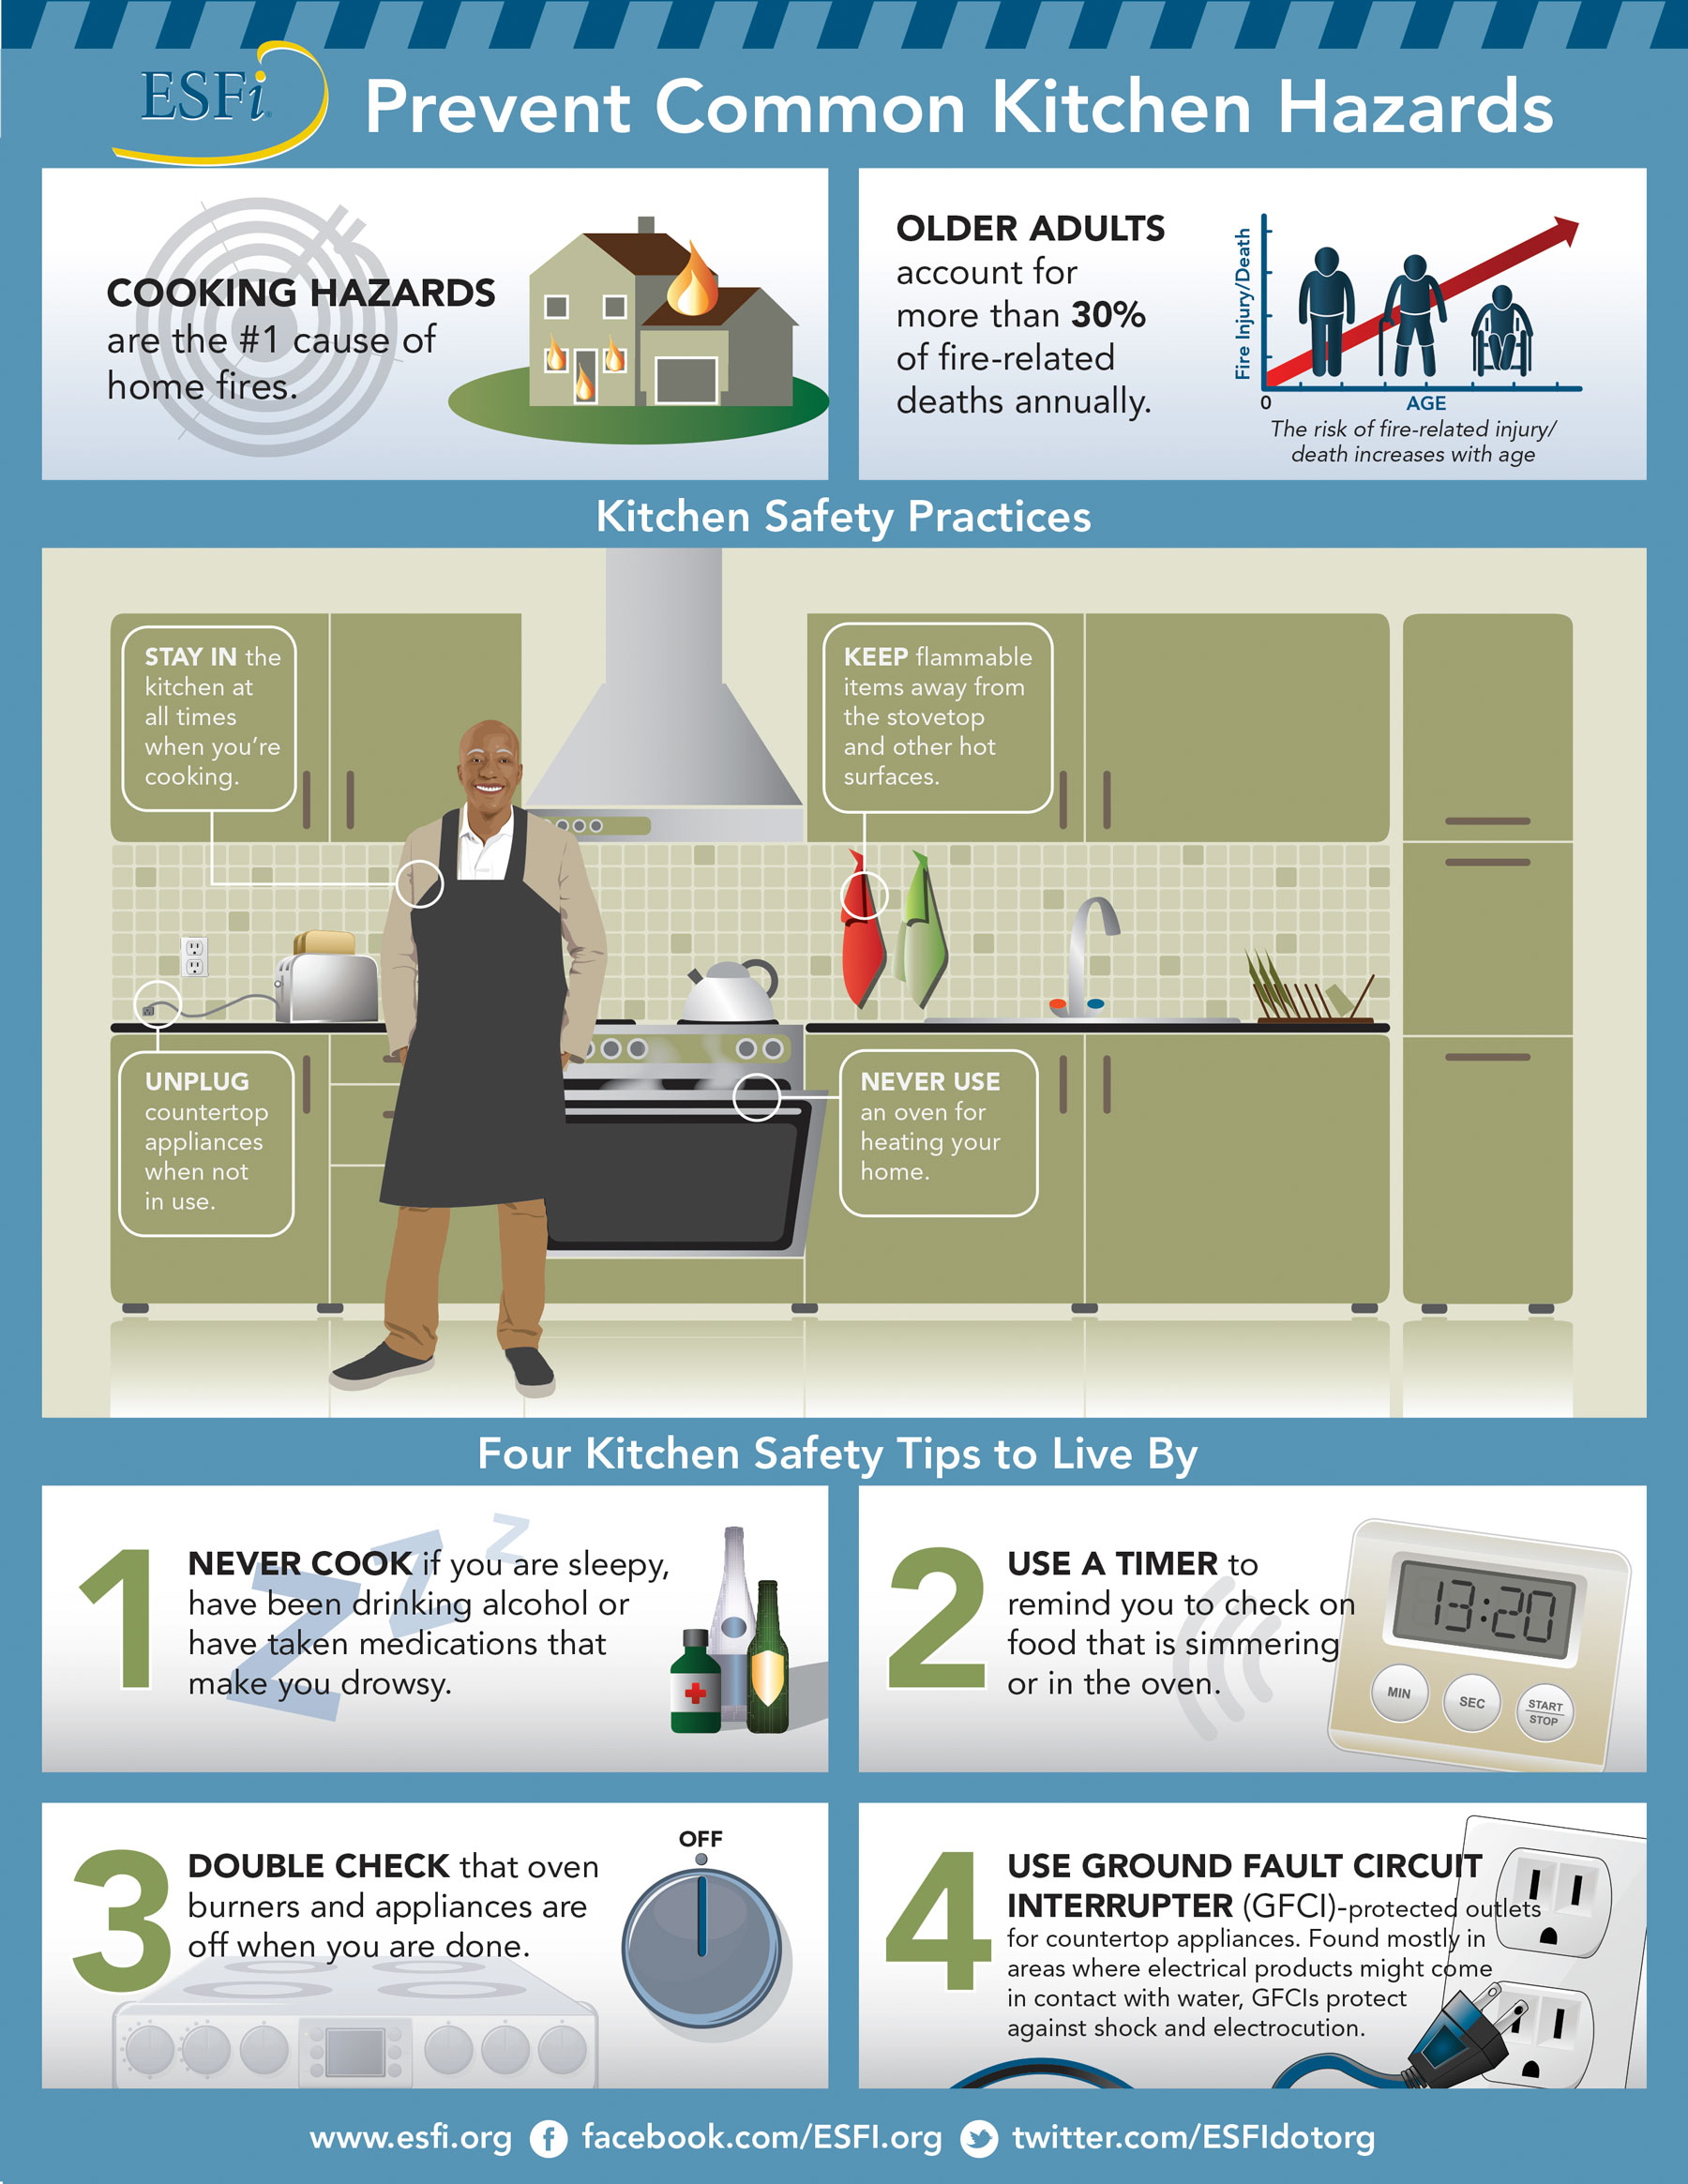 Organization Dedicated Exclusively To Promoting Electrical Safety In The Home School And Workplace ESFI Proudly Engages Public Education Campaigns